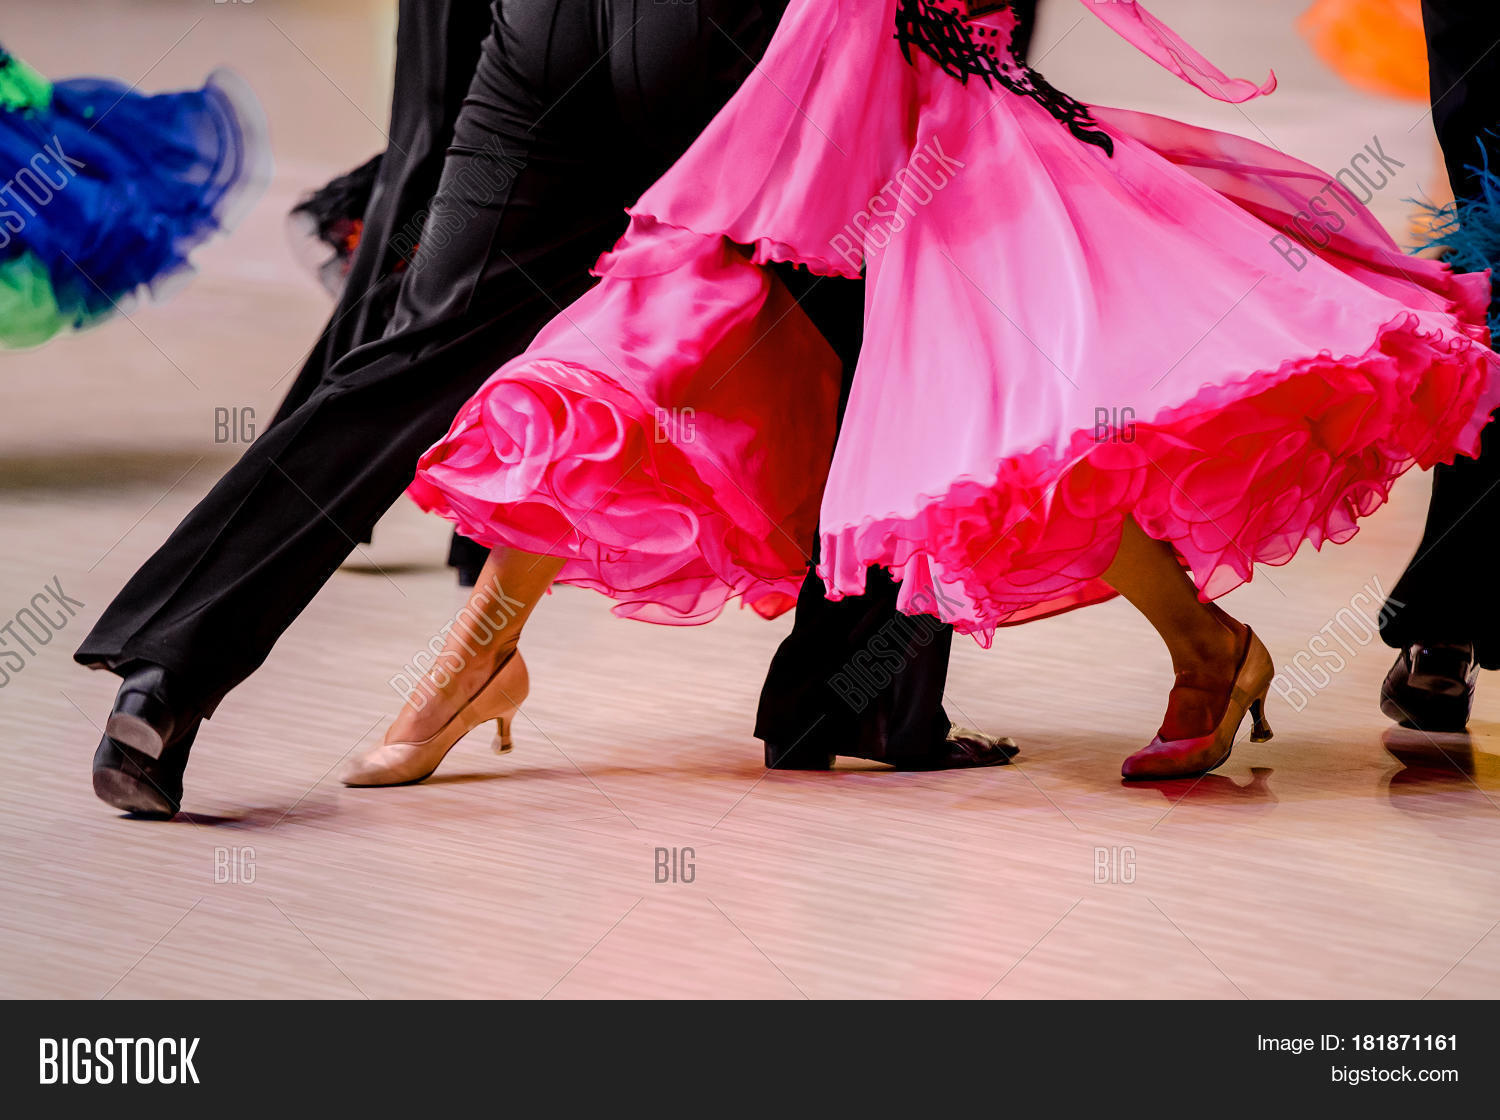 Competitions Ballroom Image & Photo (Free Trial) | Bigstock